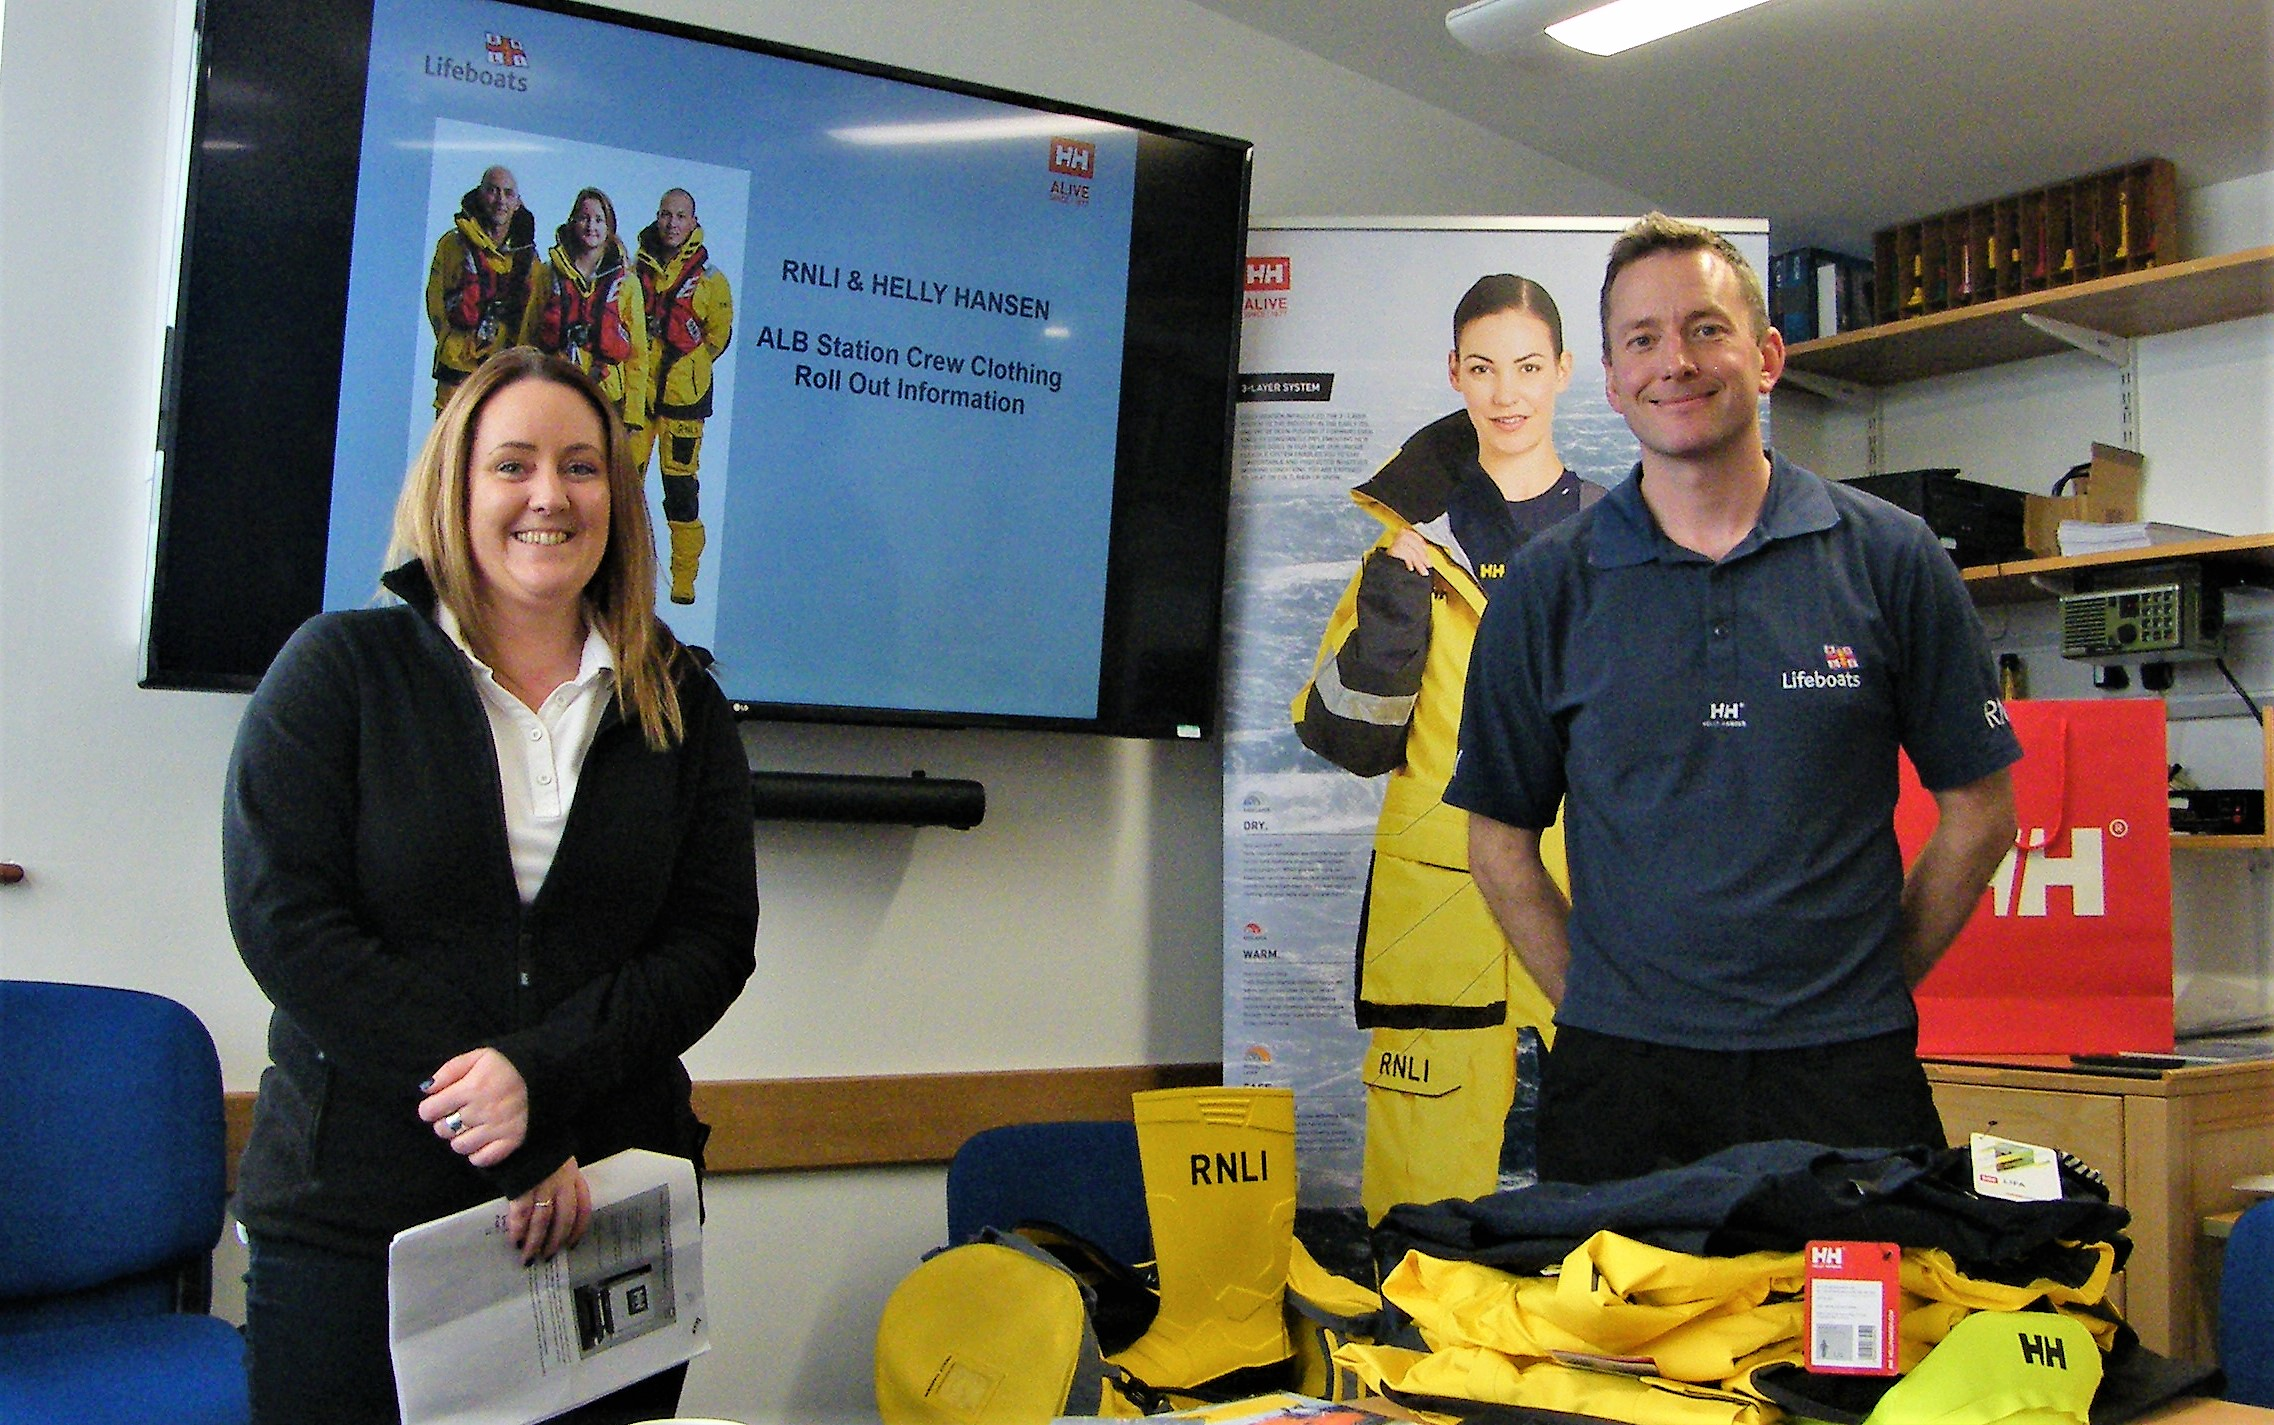 RNLI staff members Amanda Boon and Edward Elwood smiling to the camera with the new kit